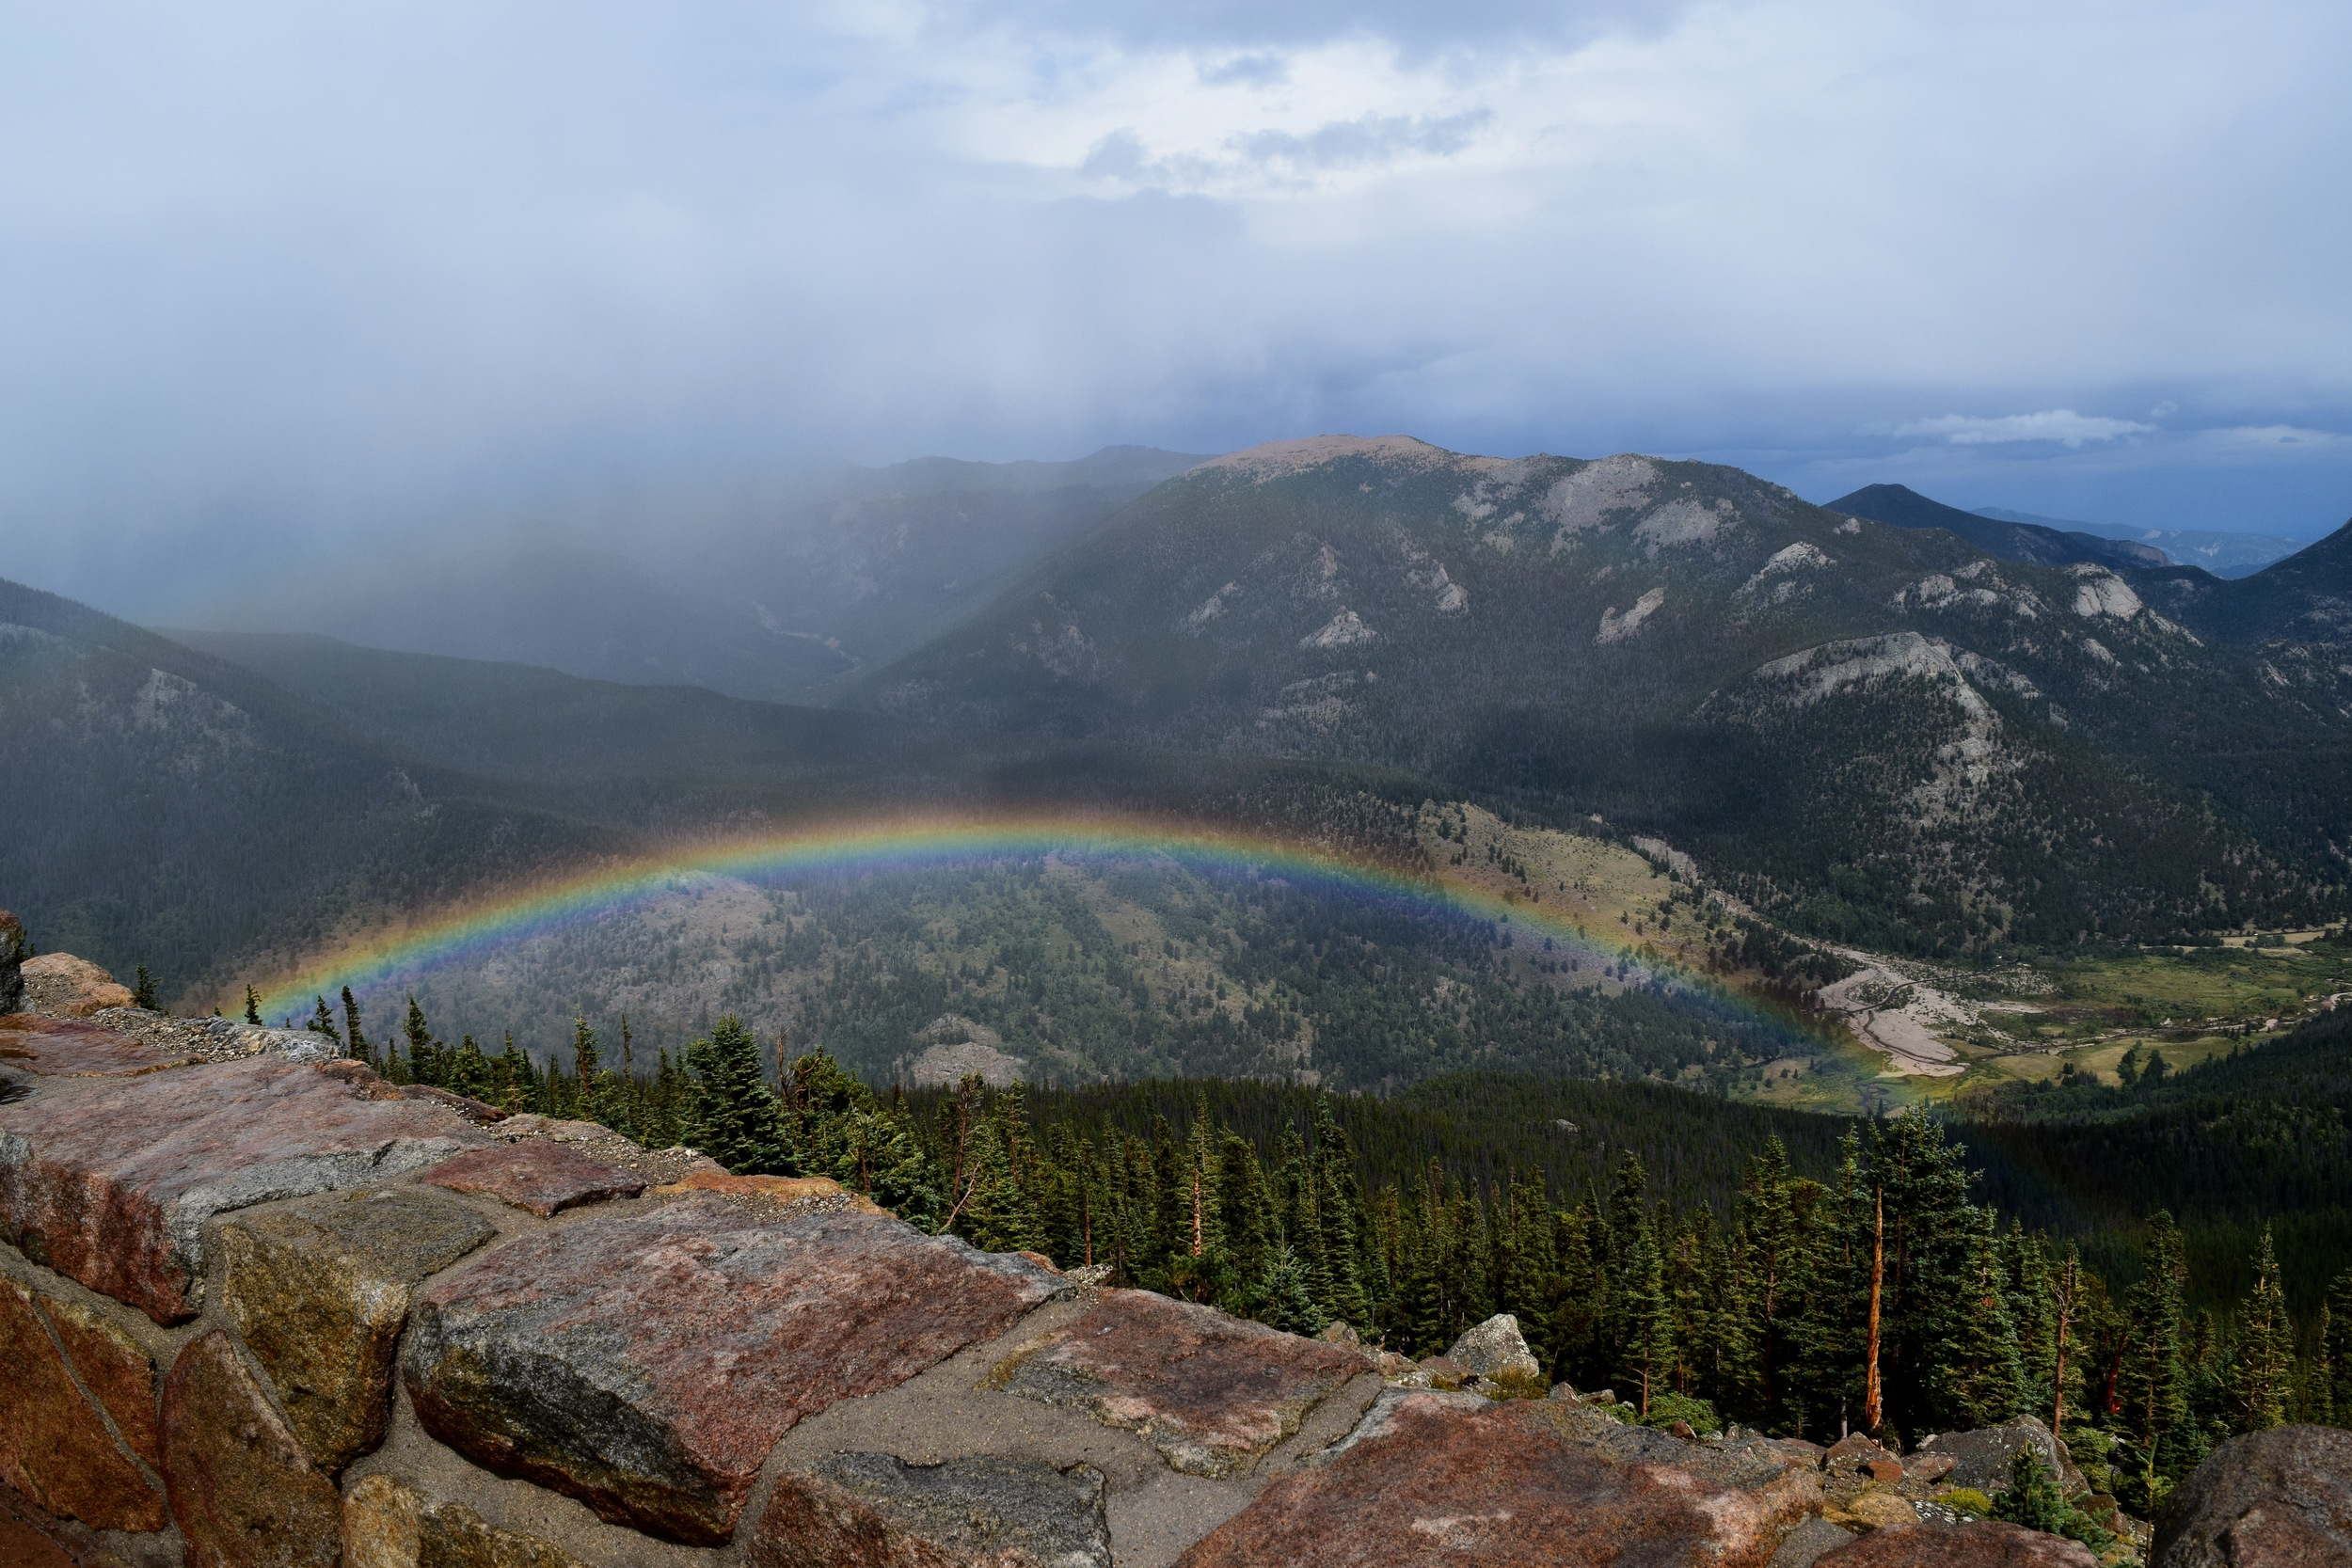 Surprisng double rainbow over the edge of Rainbow Curve (the second one is faint, but shows up on the middle left